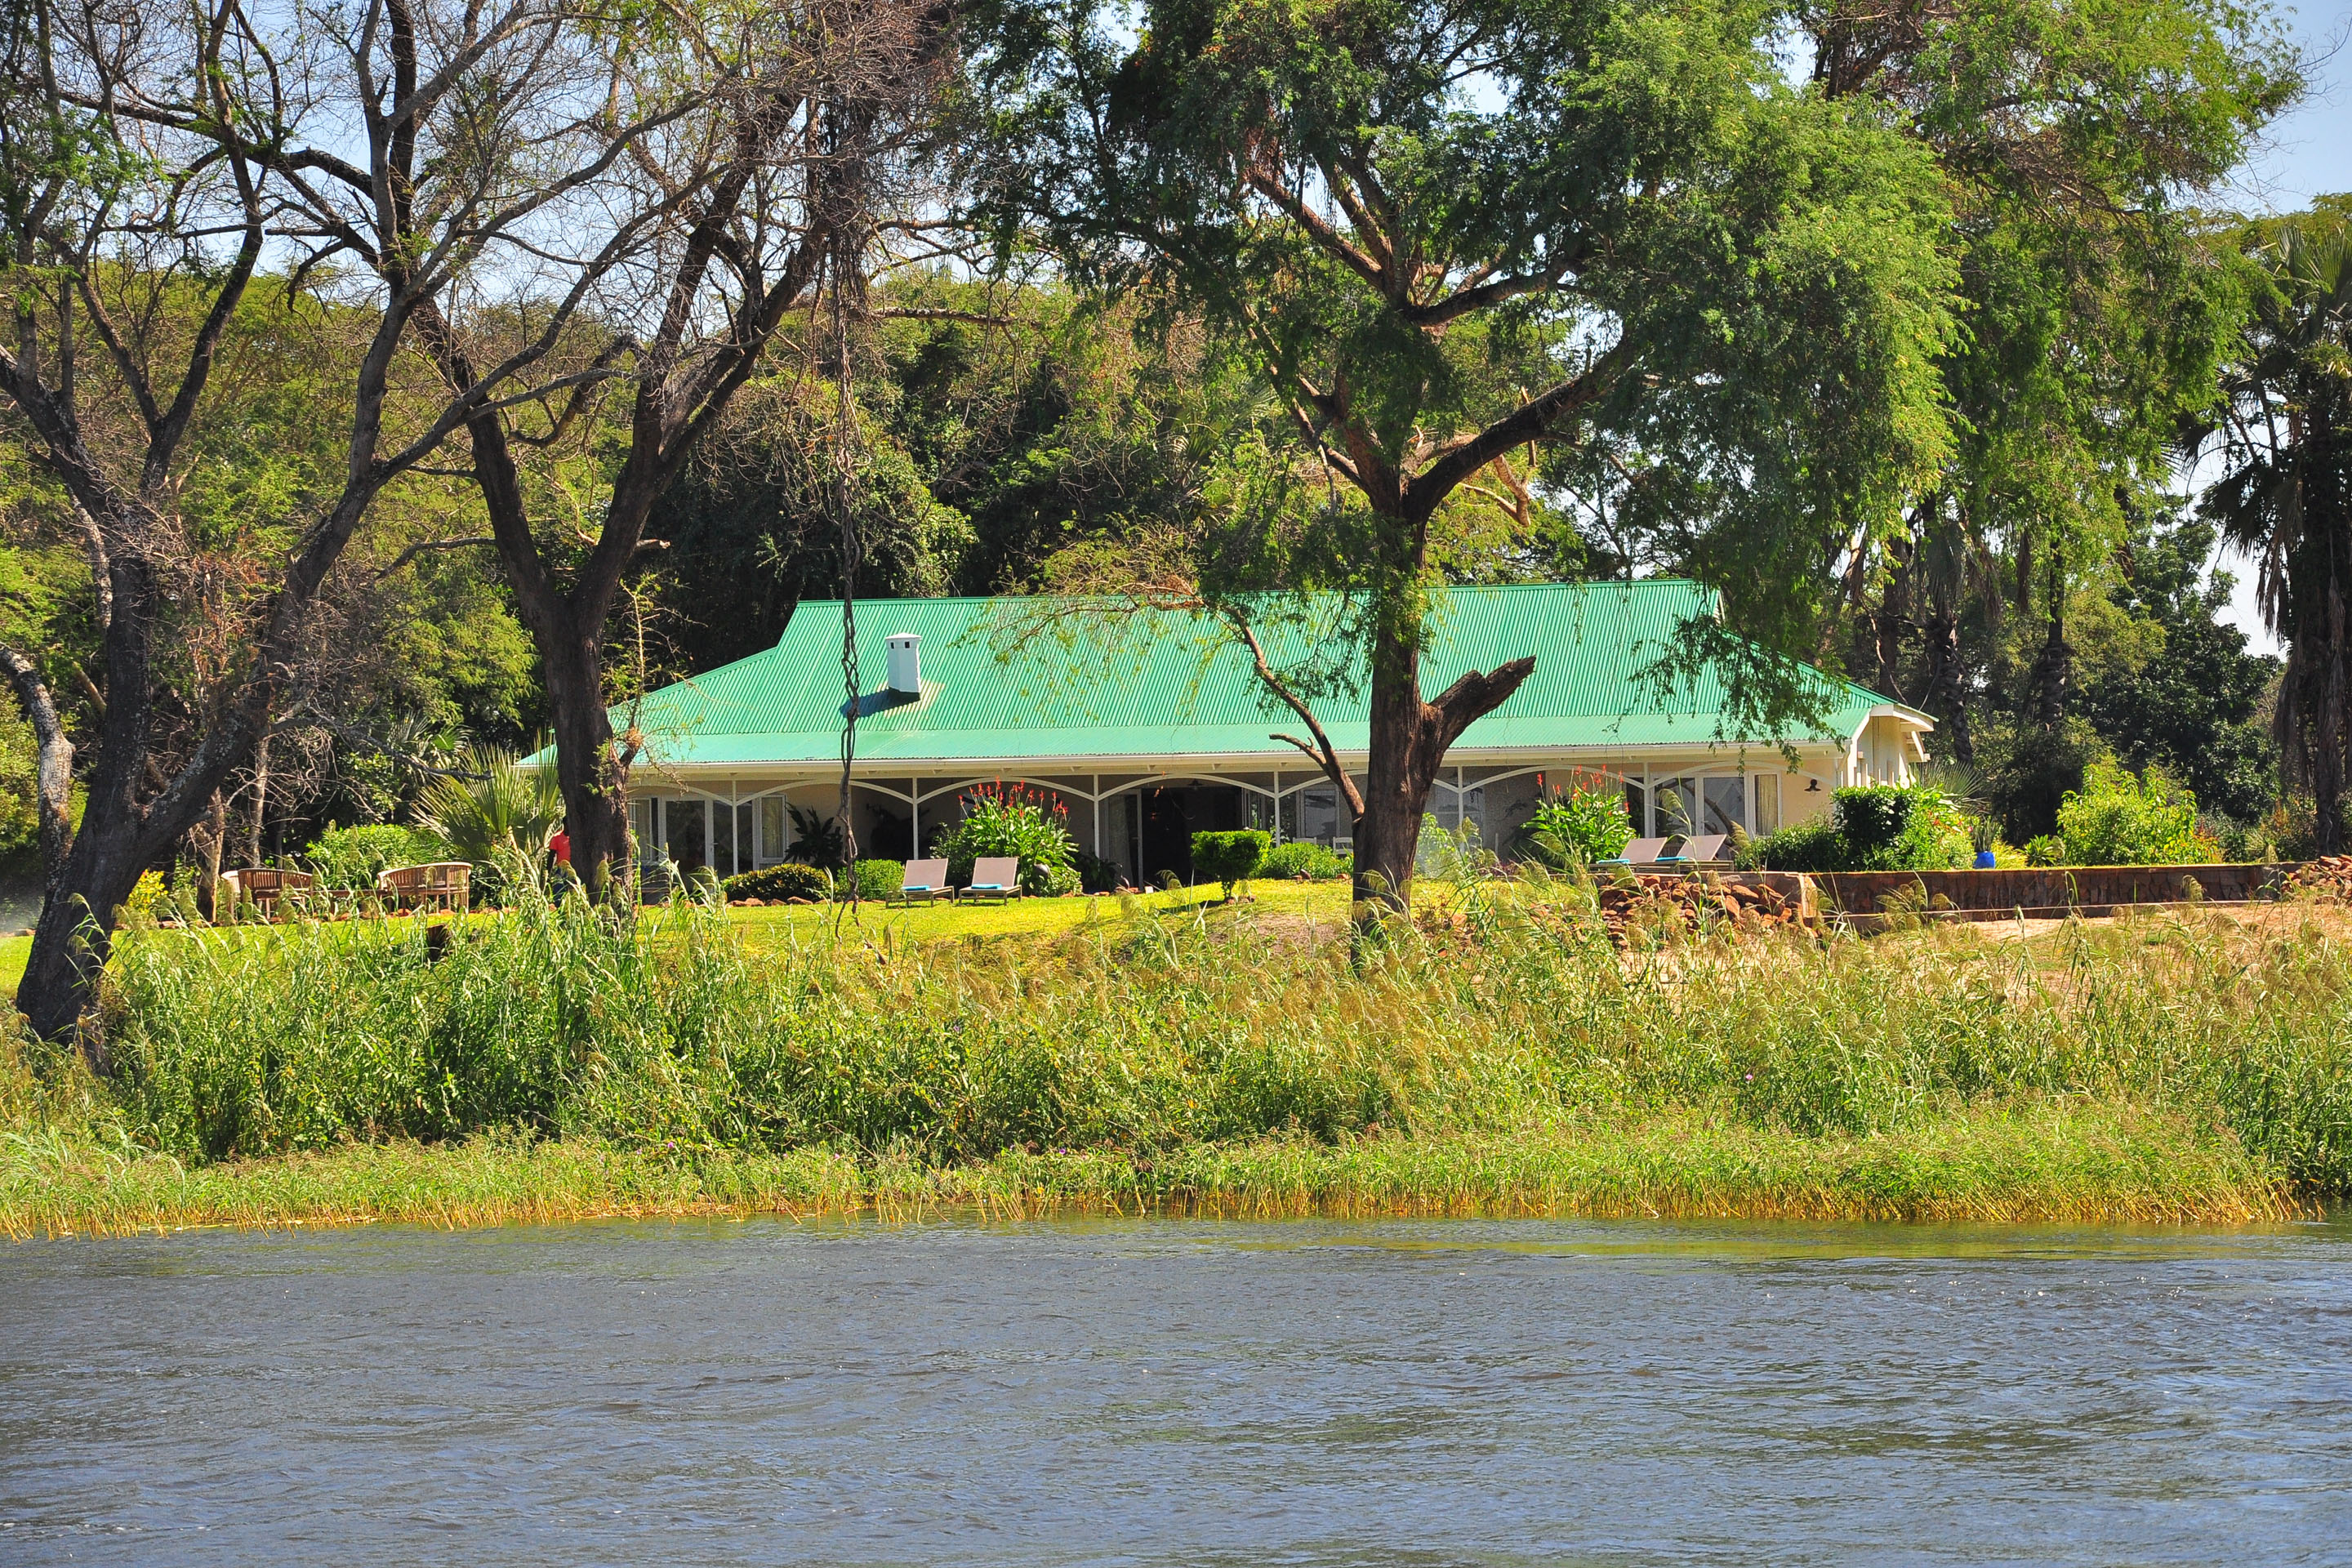 Bank Of Zambia Home The River Farmhouse Zambia Timbuktu Travel